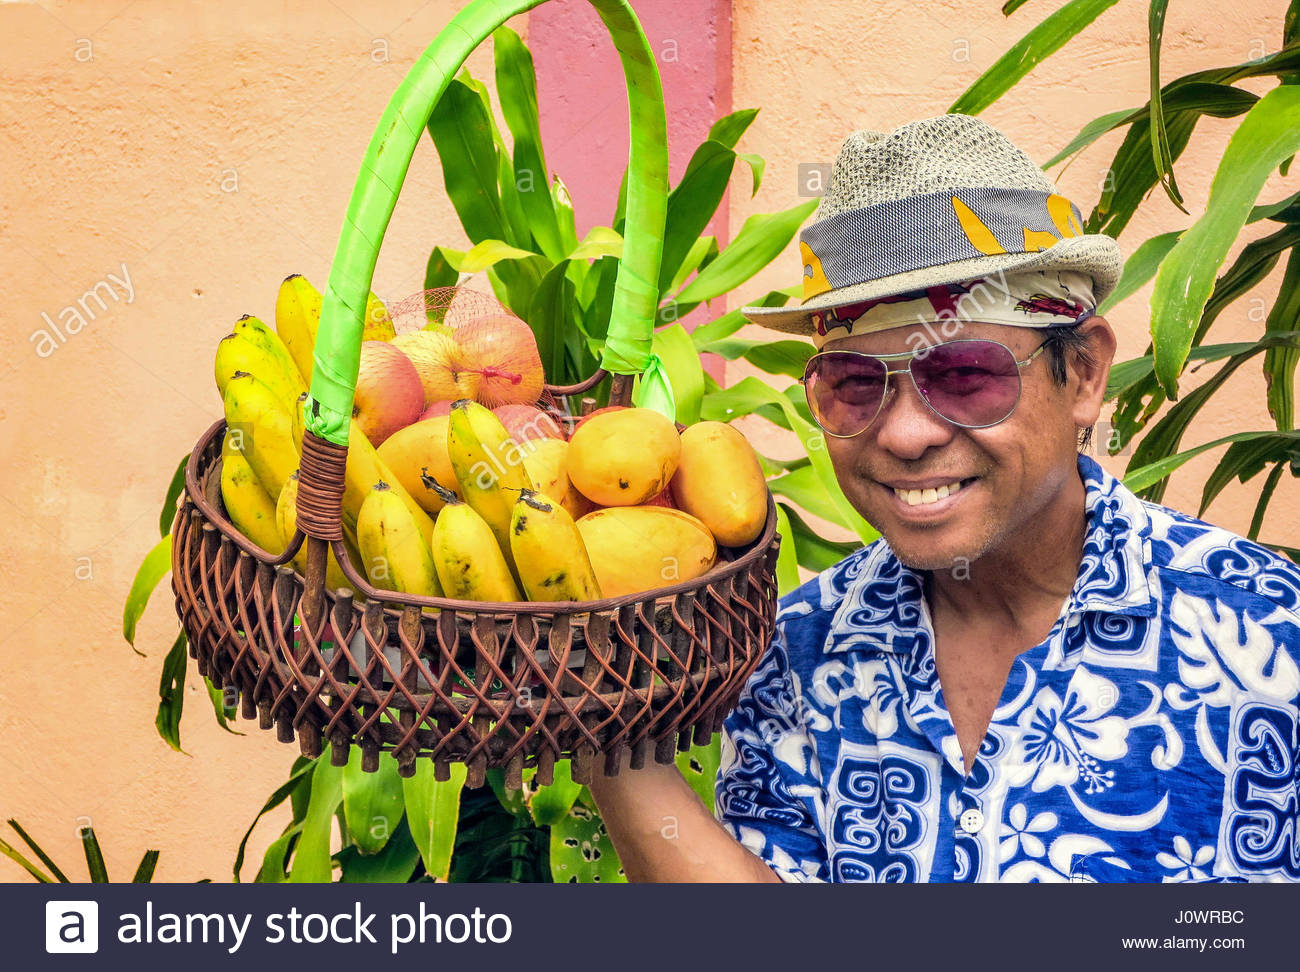 Portrait of a smiling Filipino man wearing a fedora hat, sunglasses and a flower shirt holding a basket of fresh - Stock Image